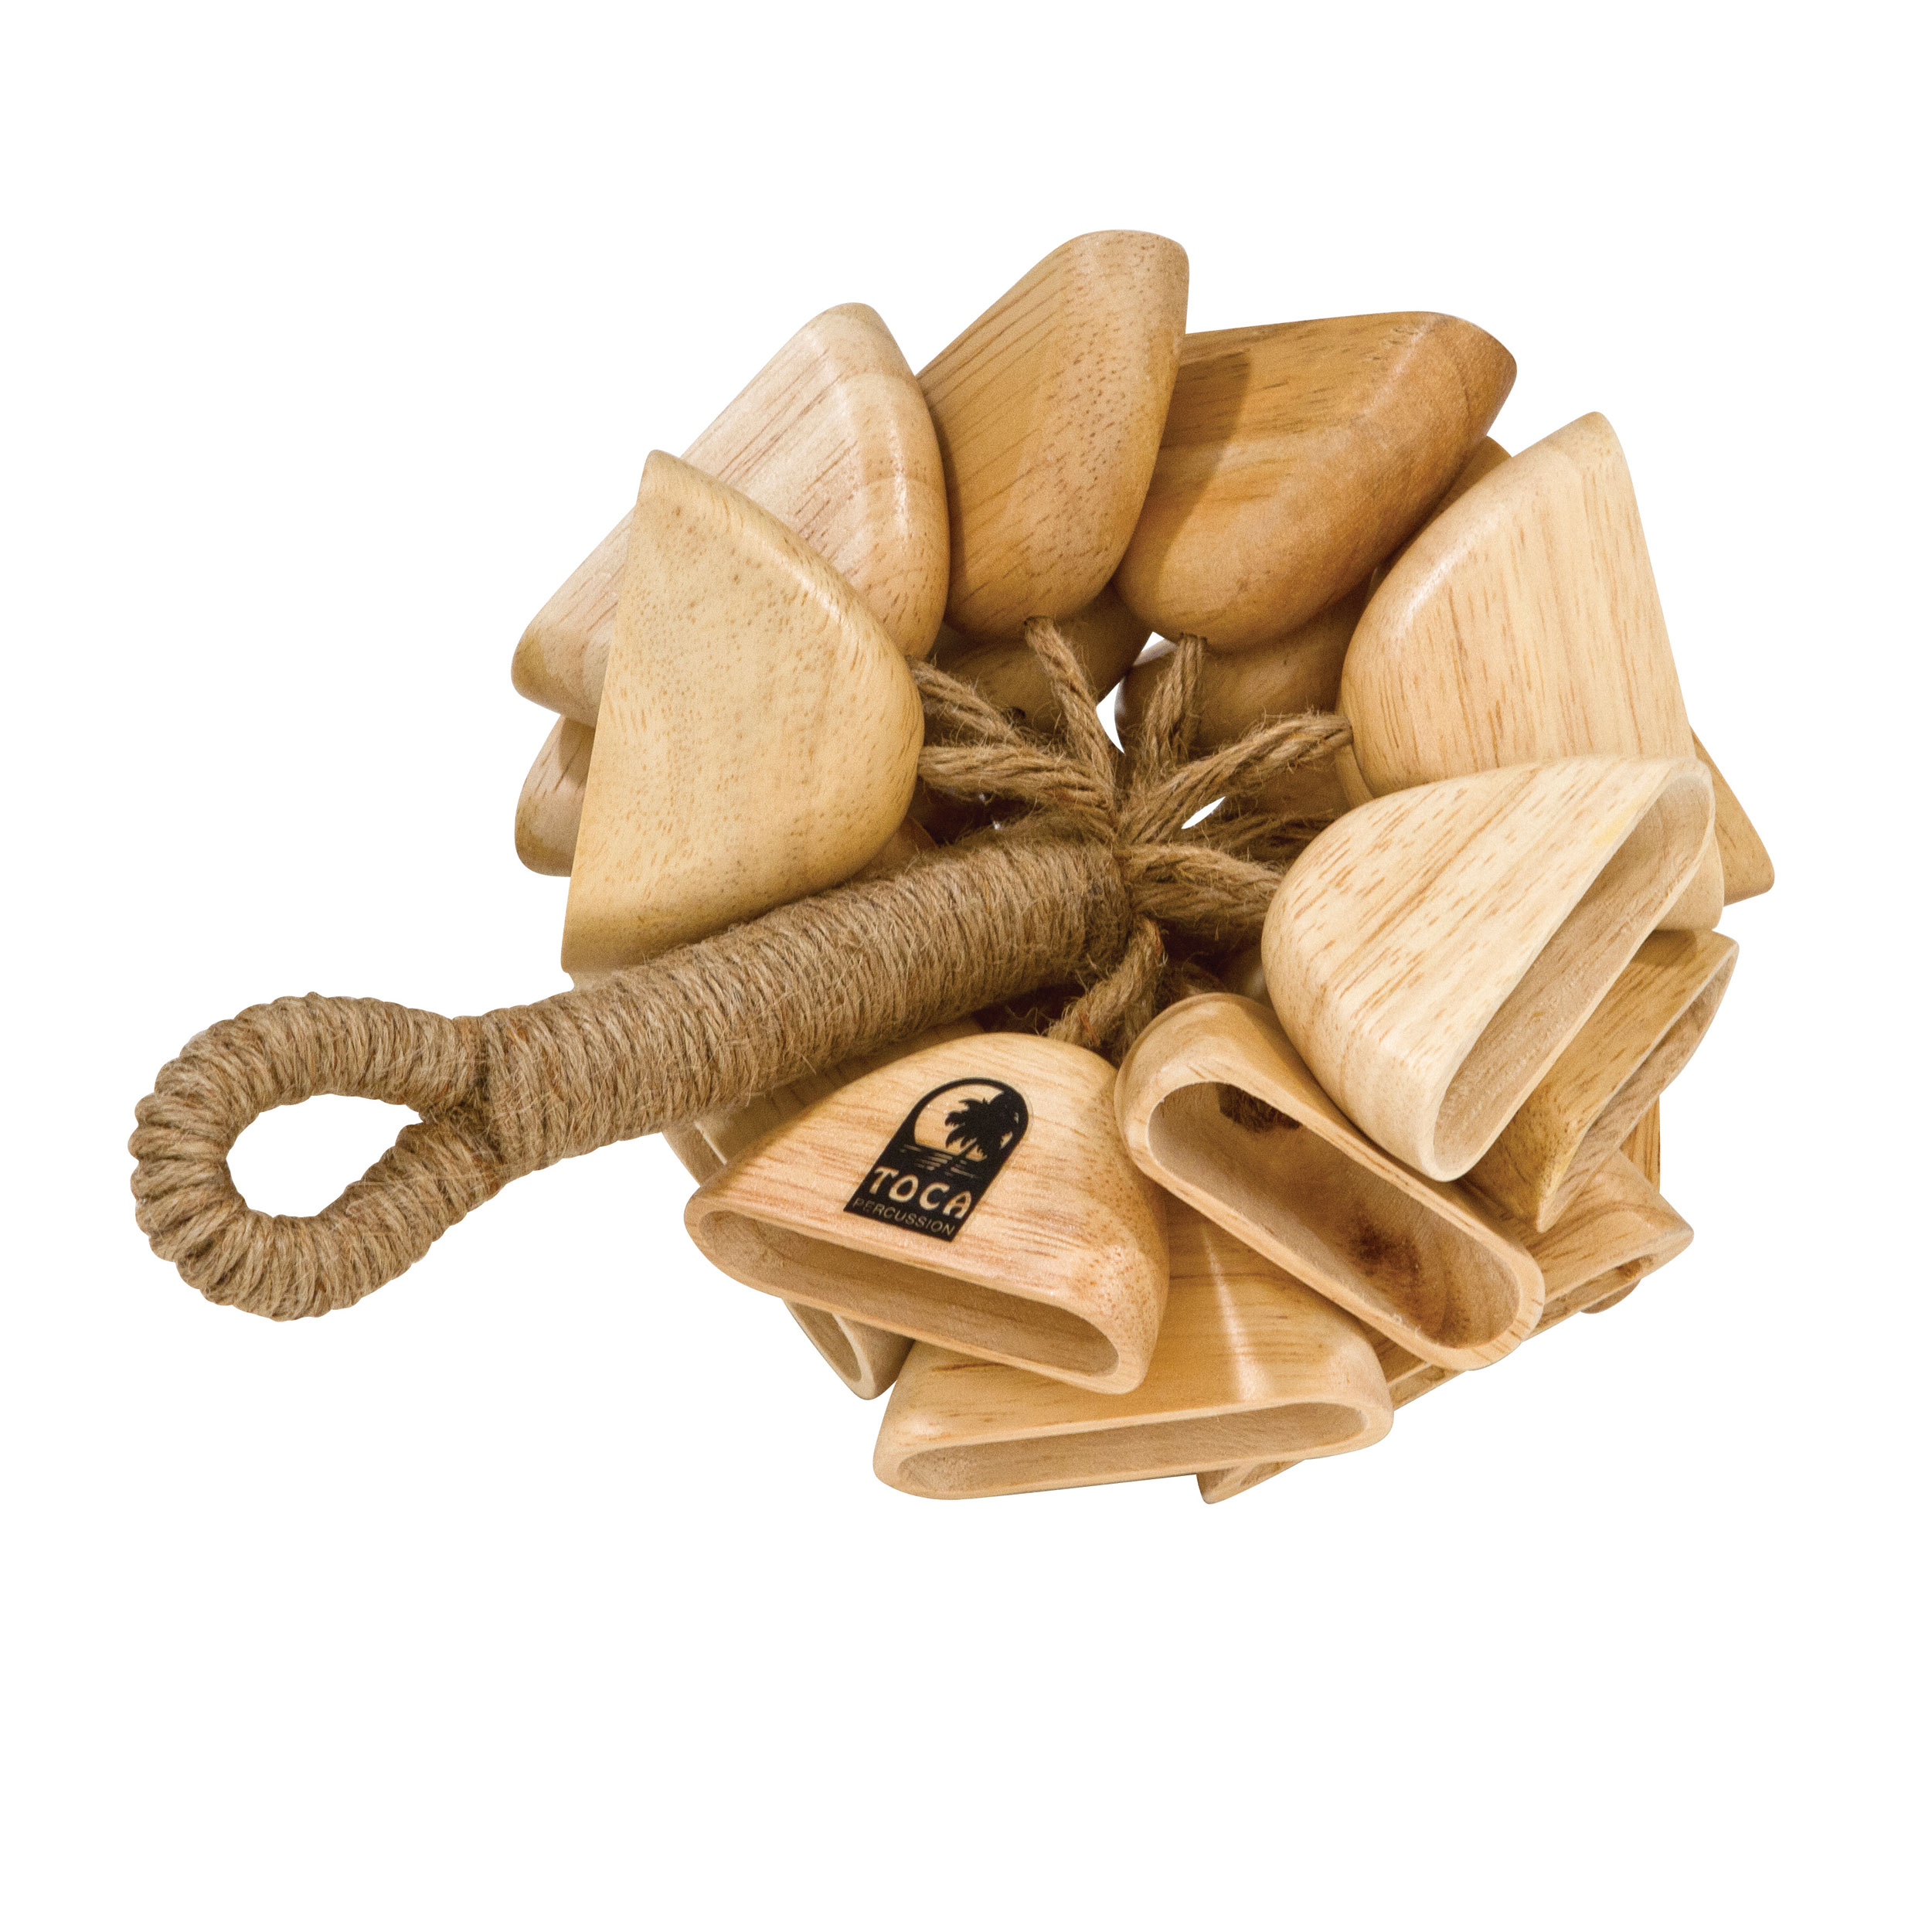 Toca Wooden Rattle with Handle